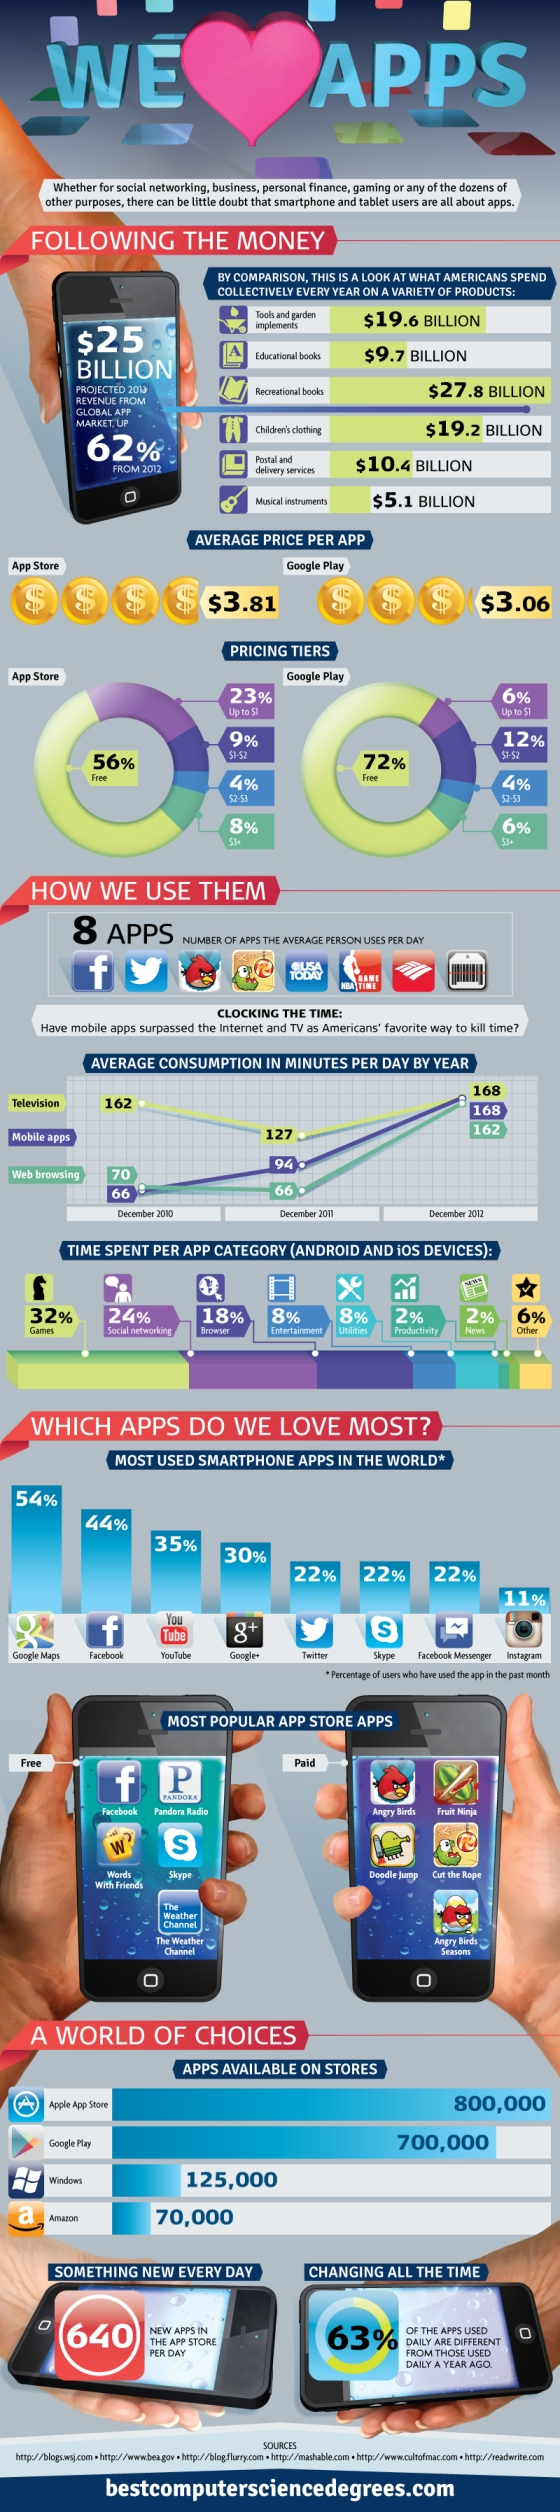 Infographic : We Love Apps